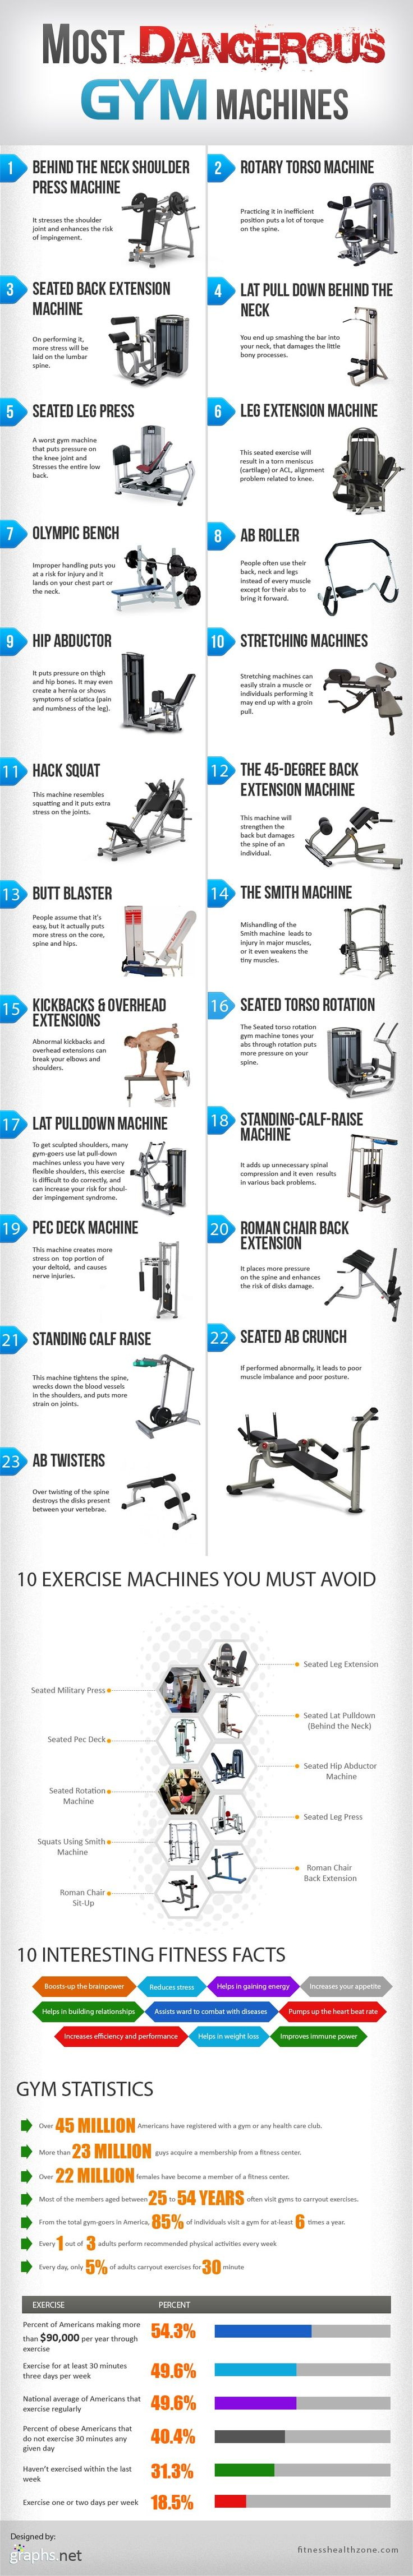 20+ Most Dangerous #Gym Machines #infographic #health